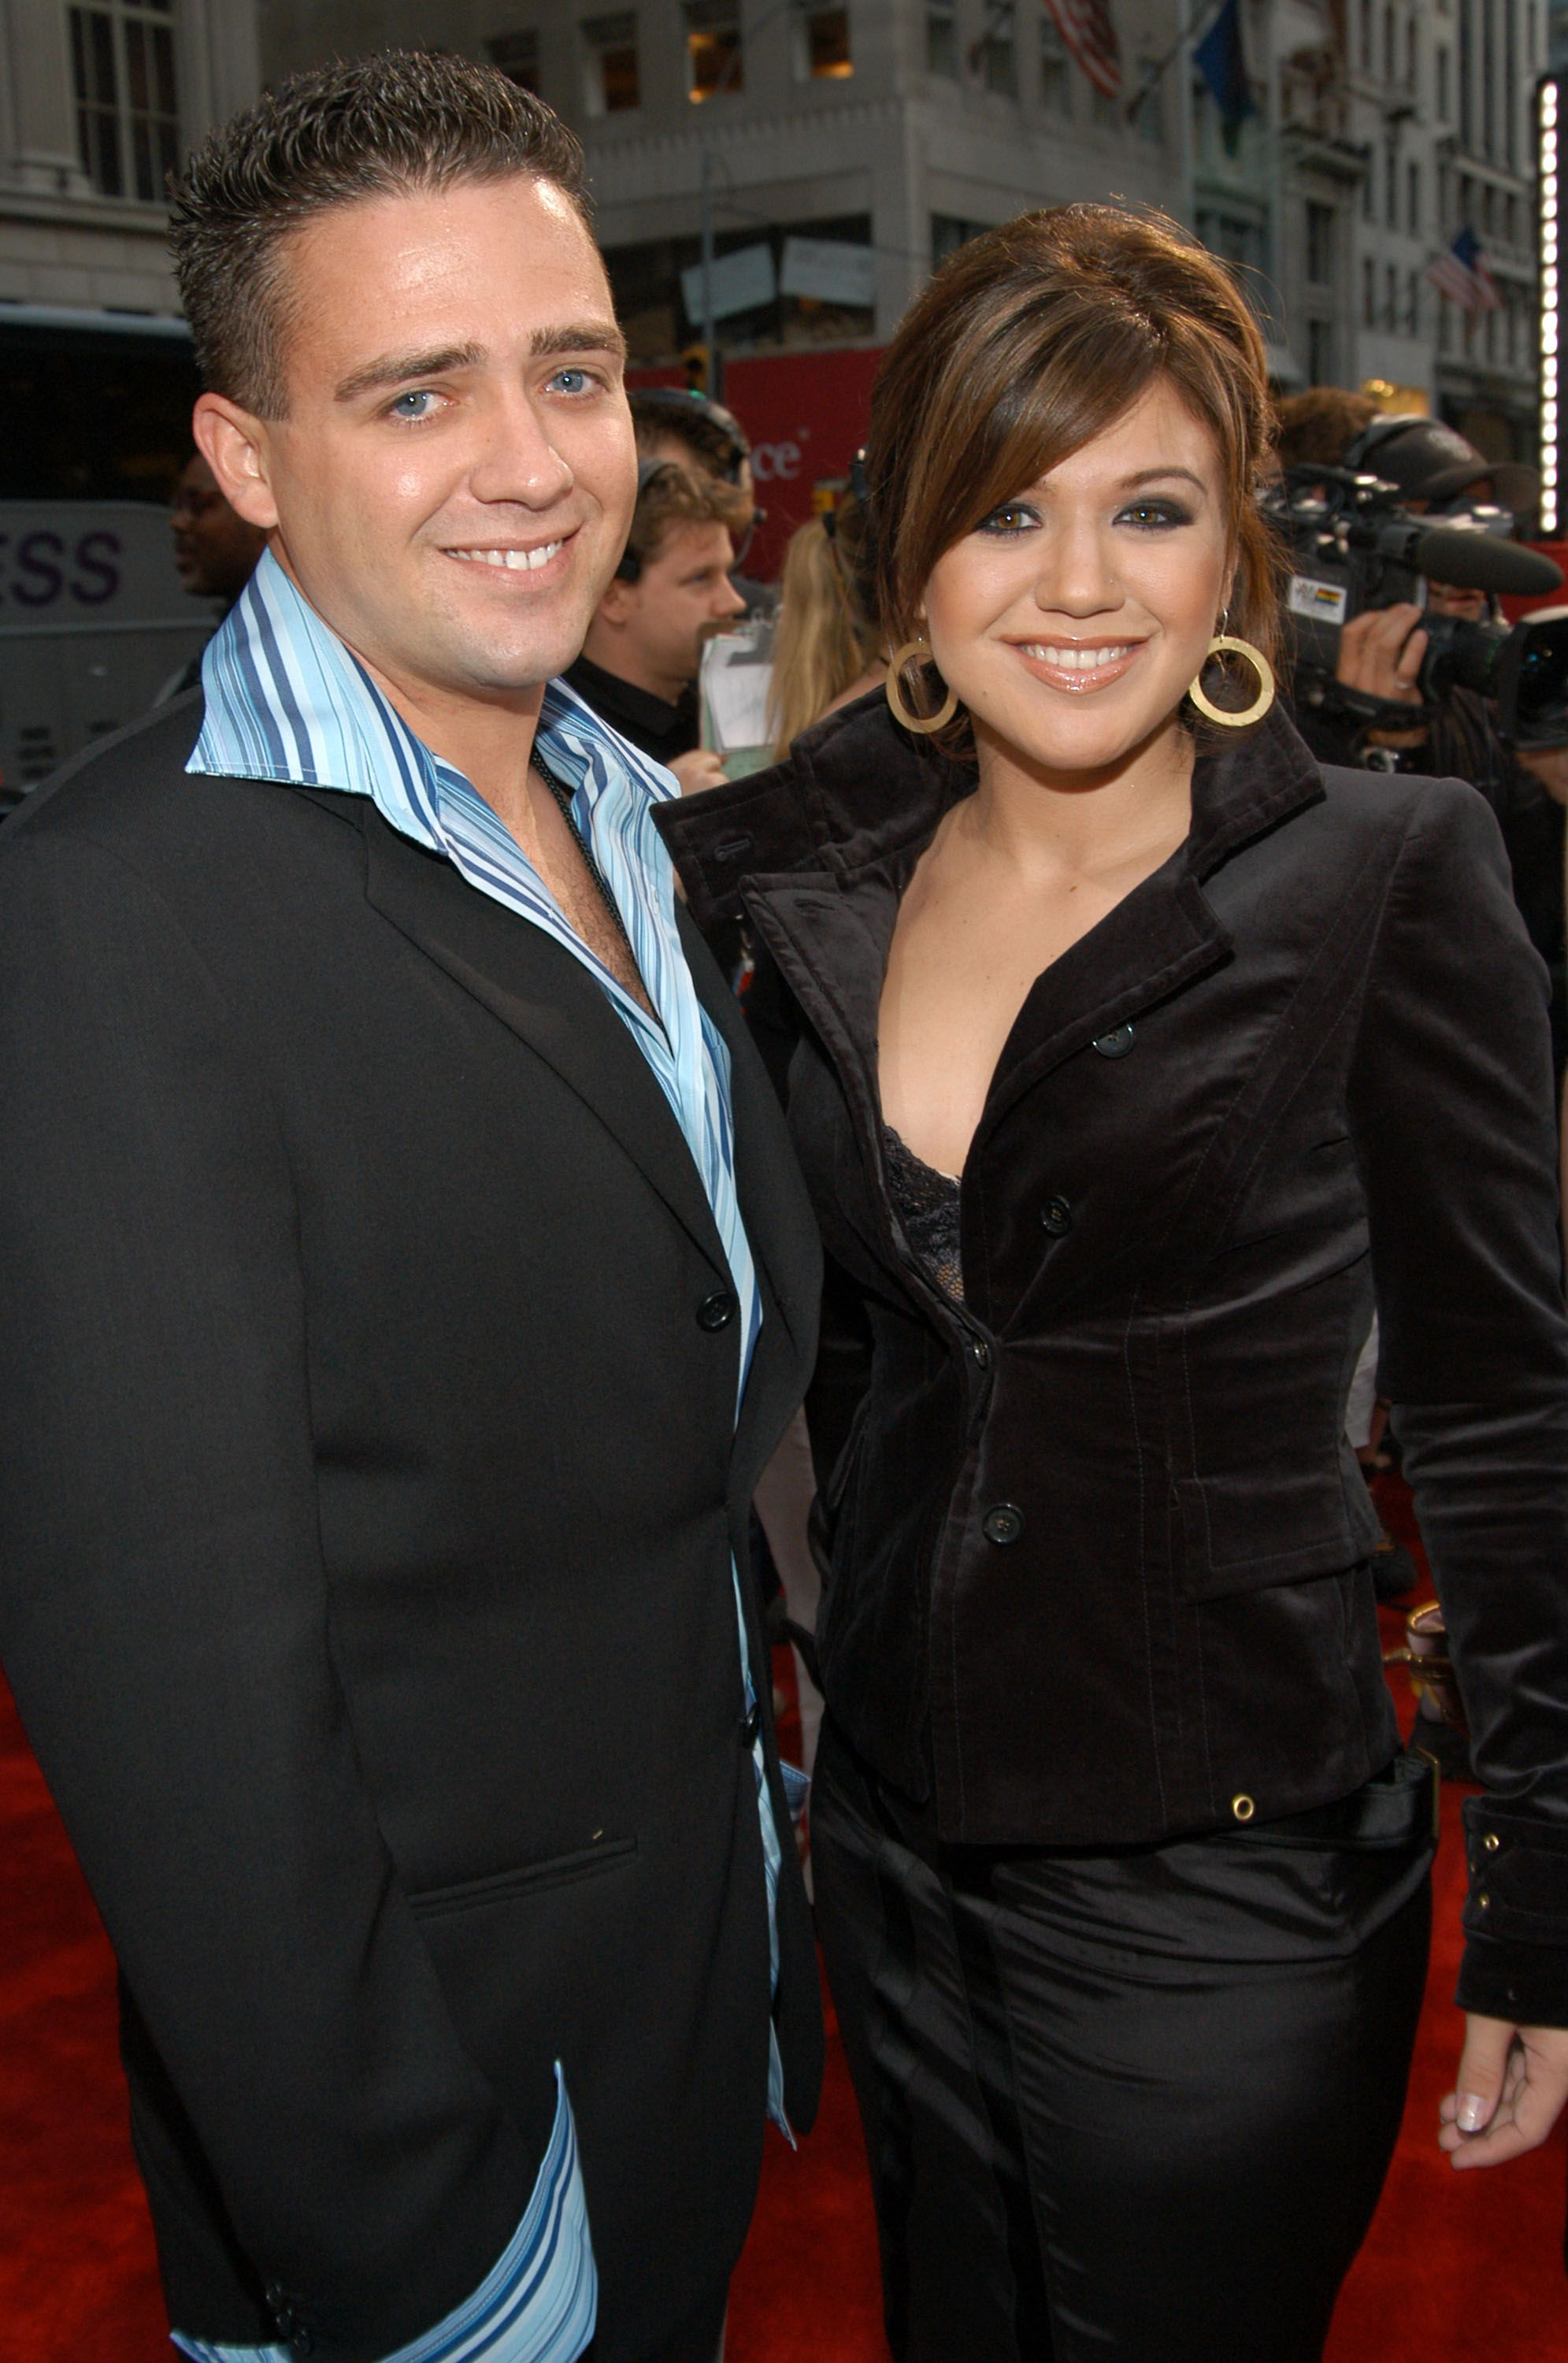 Jason Clarkson and Kelly Clarkson at the Radio City Music Hall in New York City / Getty Images